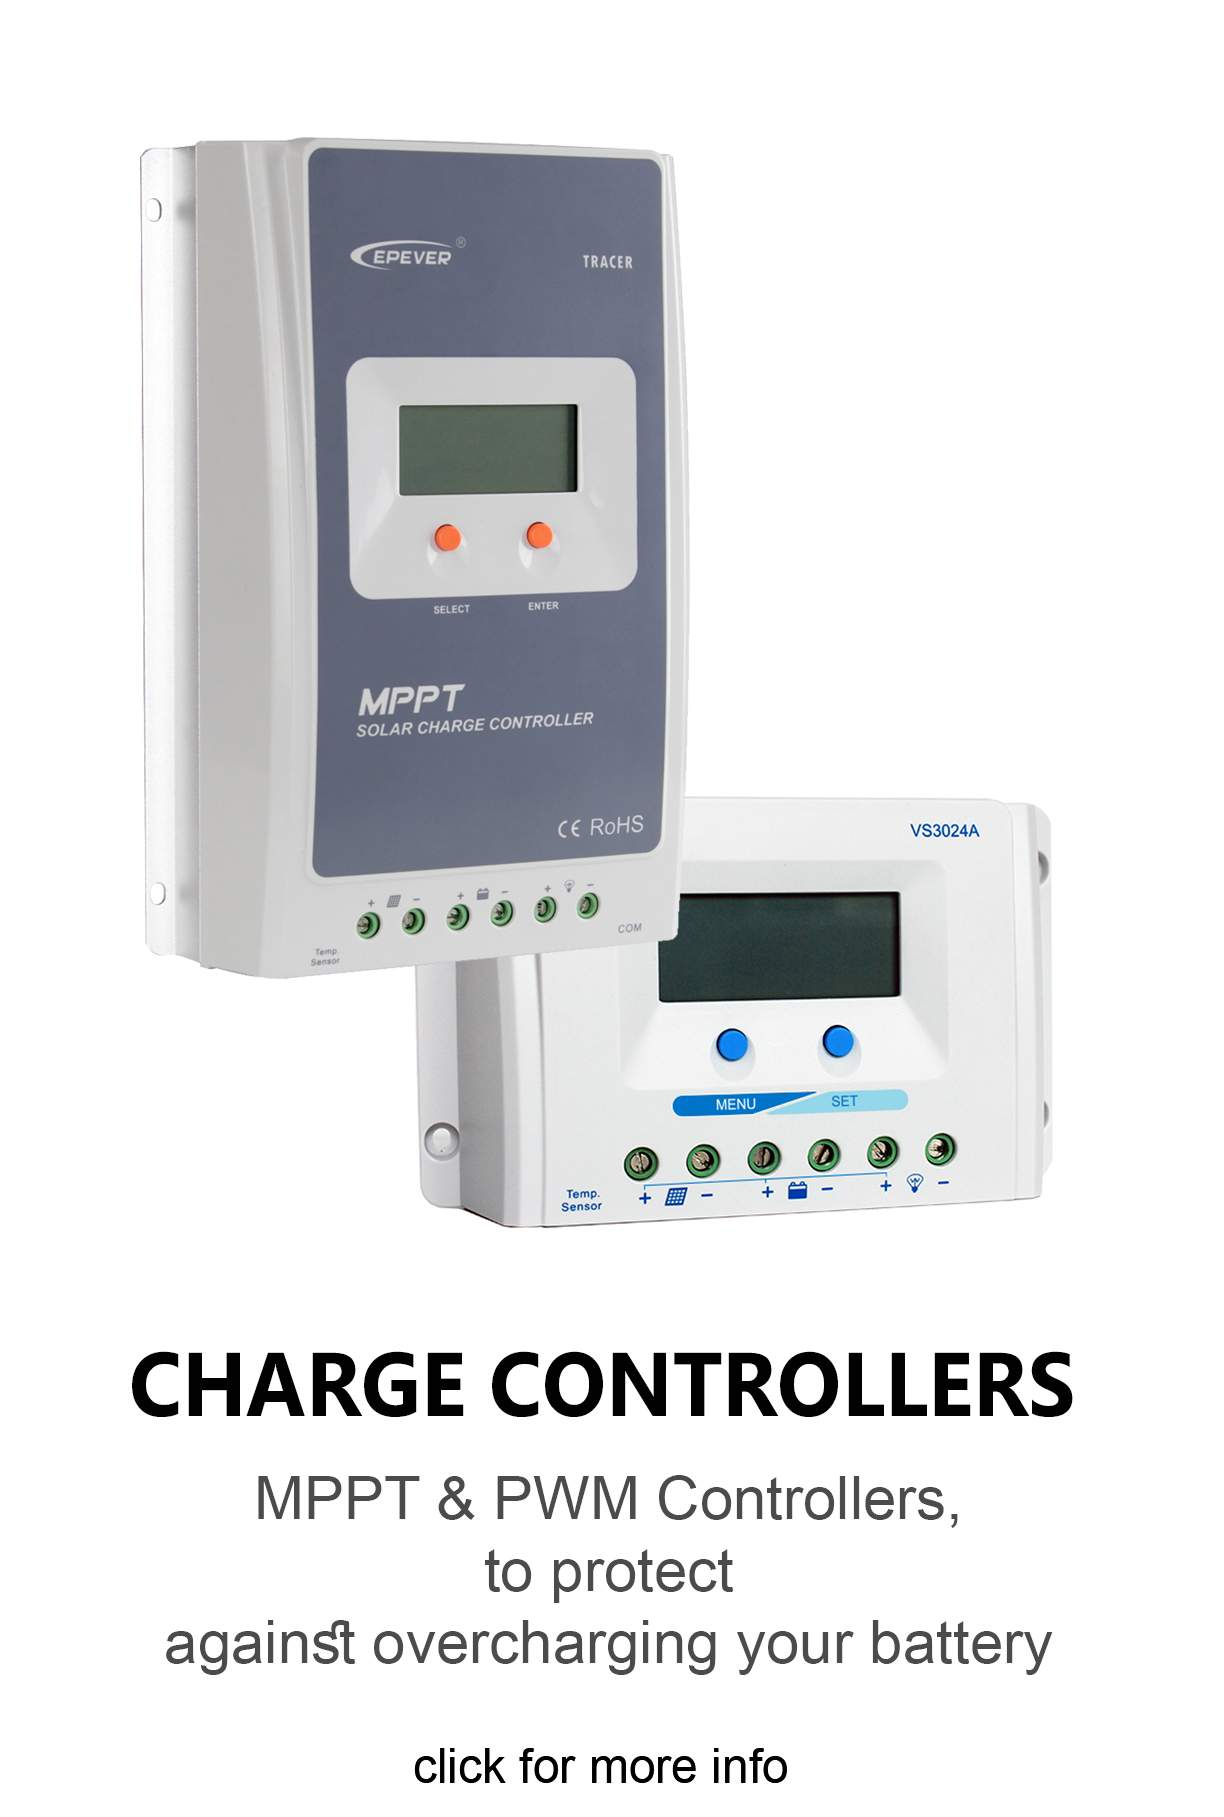 PV Solar charge controllers Pretoria south Africa, solar controller for sale Pretoria, mppt solar charge controller price in Pretoria south africa, pwm solar charge controller Pretoria, epever mppt controller Pretoria south africa for sale.